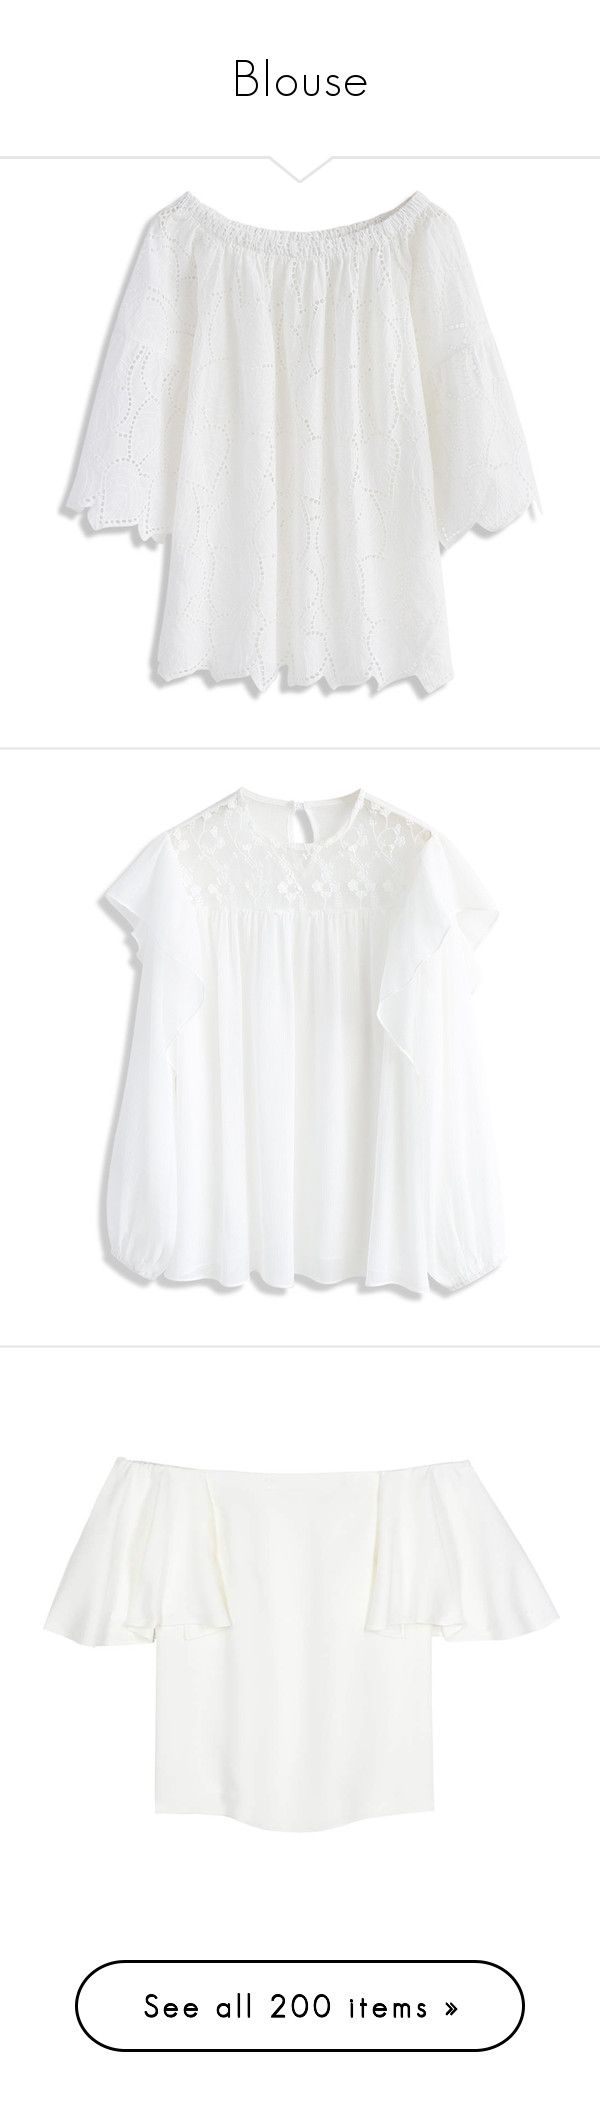 """Blouse"" by luciaborrayo on Polyvore featuring tops, white, cut loose tops, eyelet off the shoulder top, white off the shoulder top, white eyelet top, leaf print top, transparent top, frilly tops y frill top"